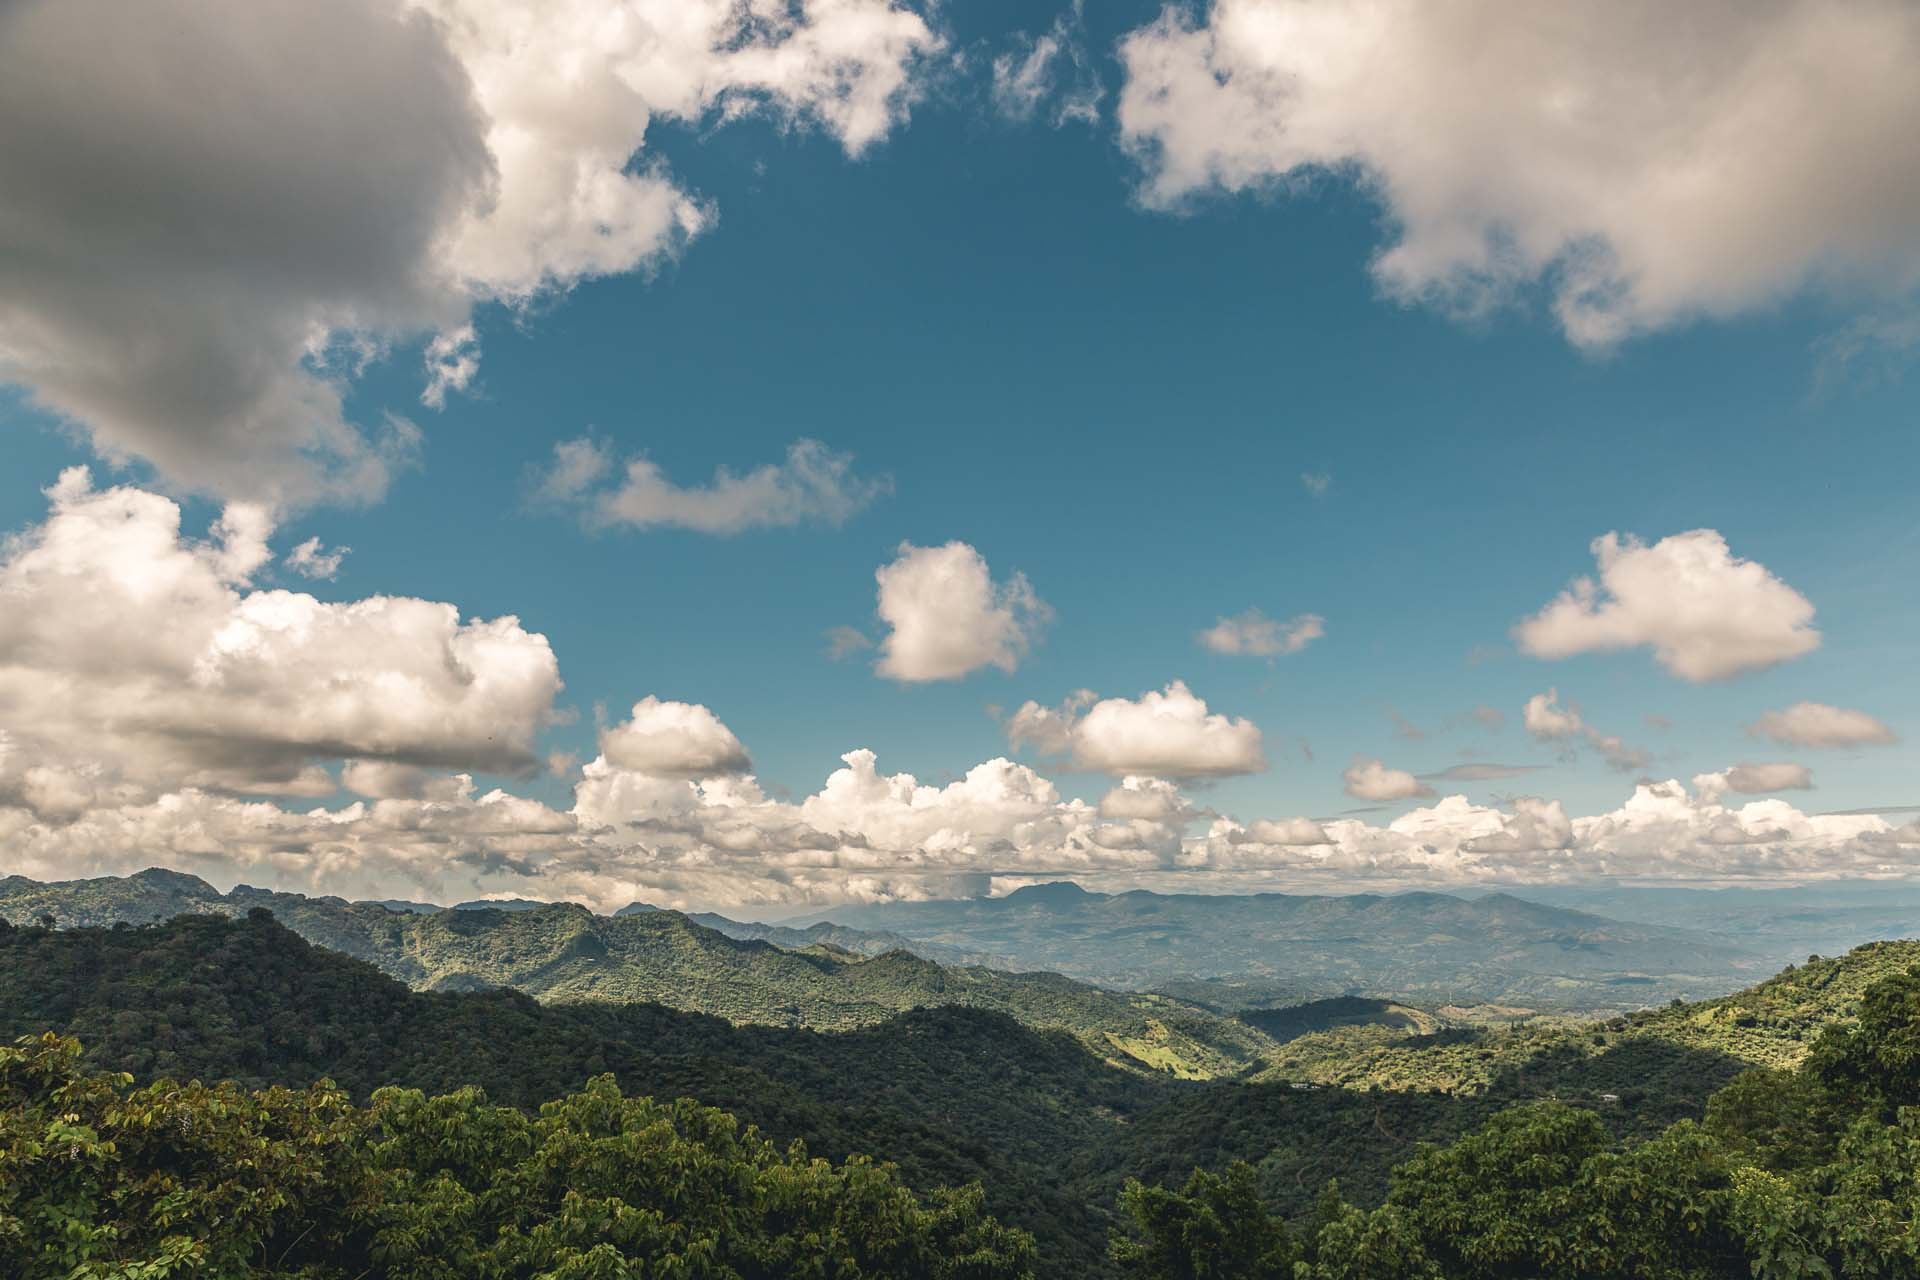 This one overlooking thousands of coffee trees as well as the border of Guatemala.